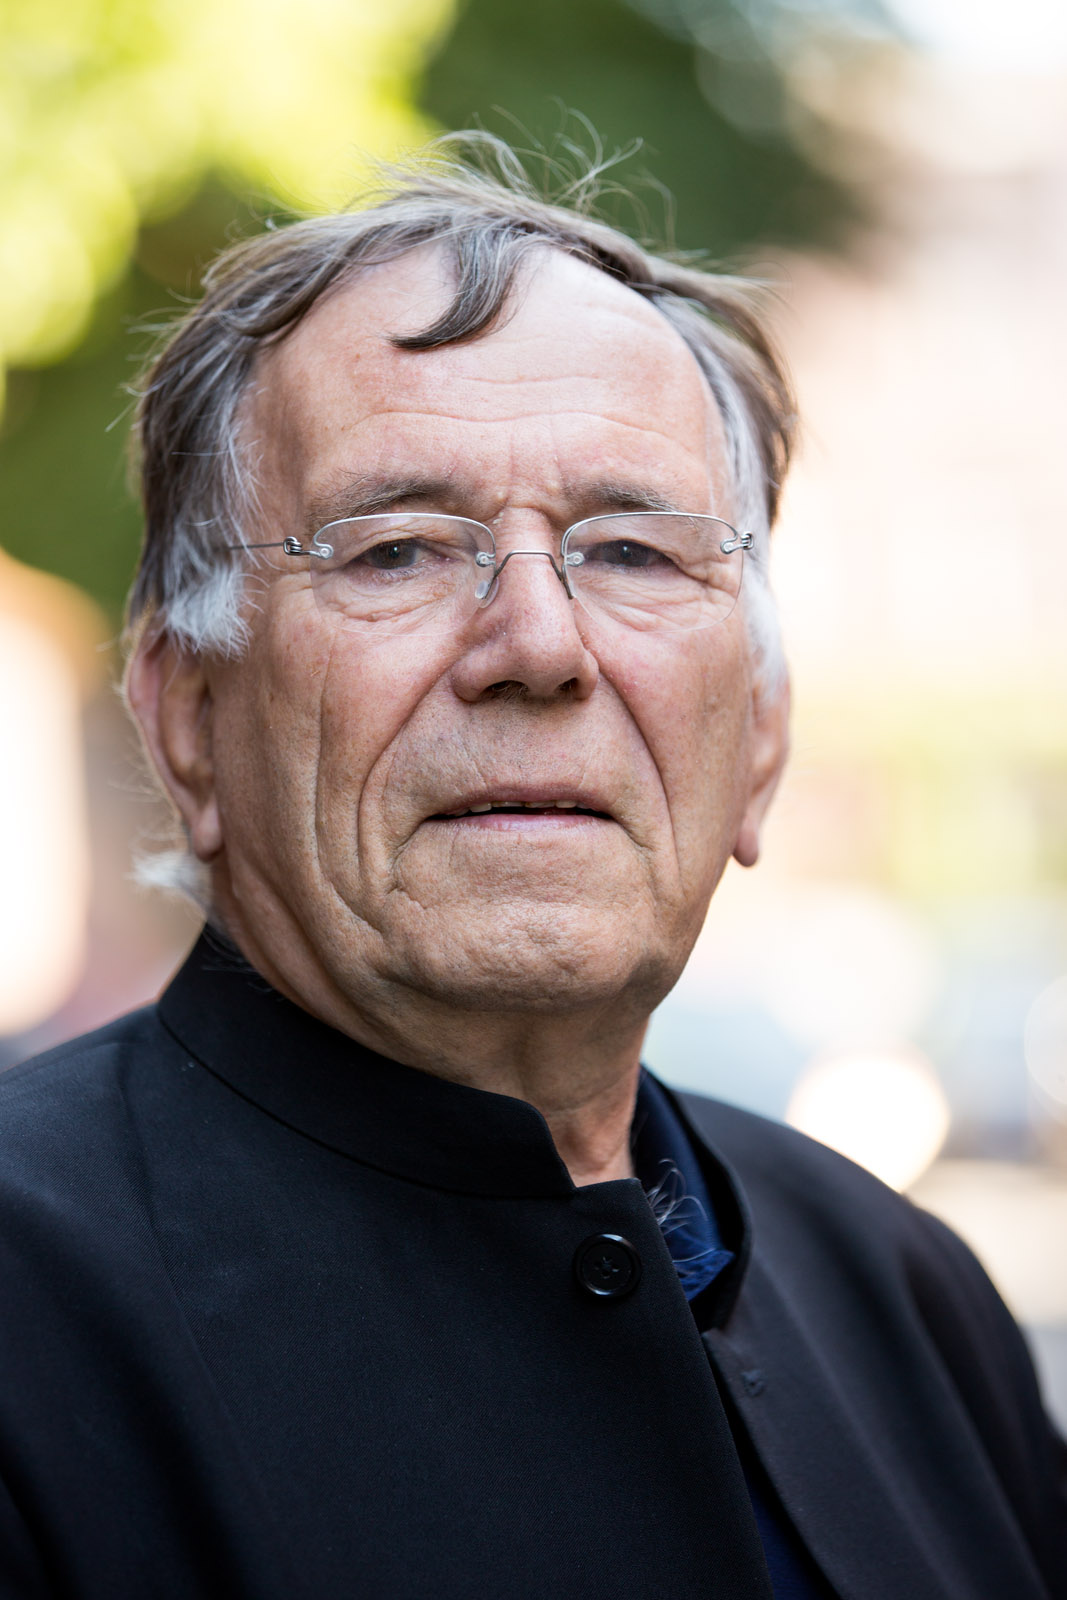 Jan Gehl. All rights reserved © Tomas Bertelsen